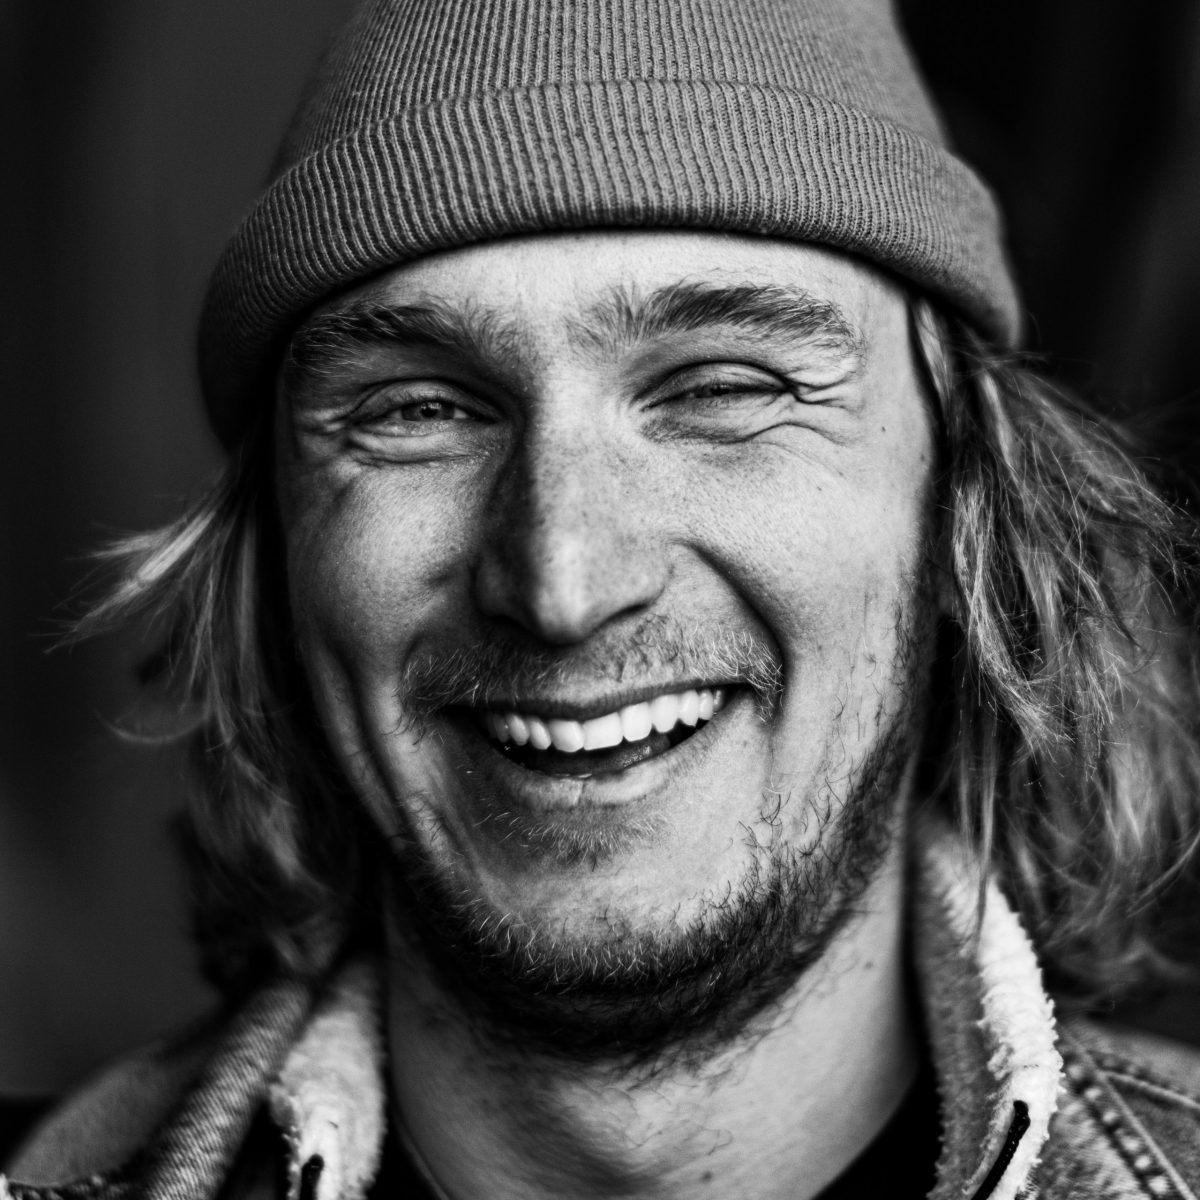 Photo of Kasper, jury member of the Unlike Portrait Awards photography contest